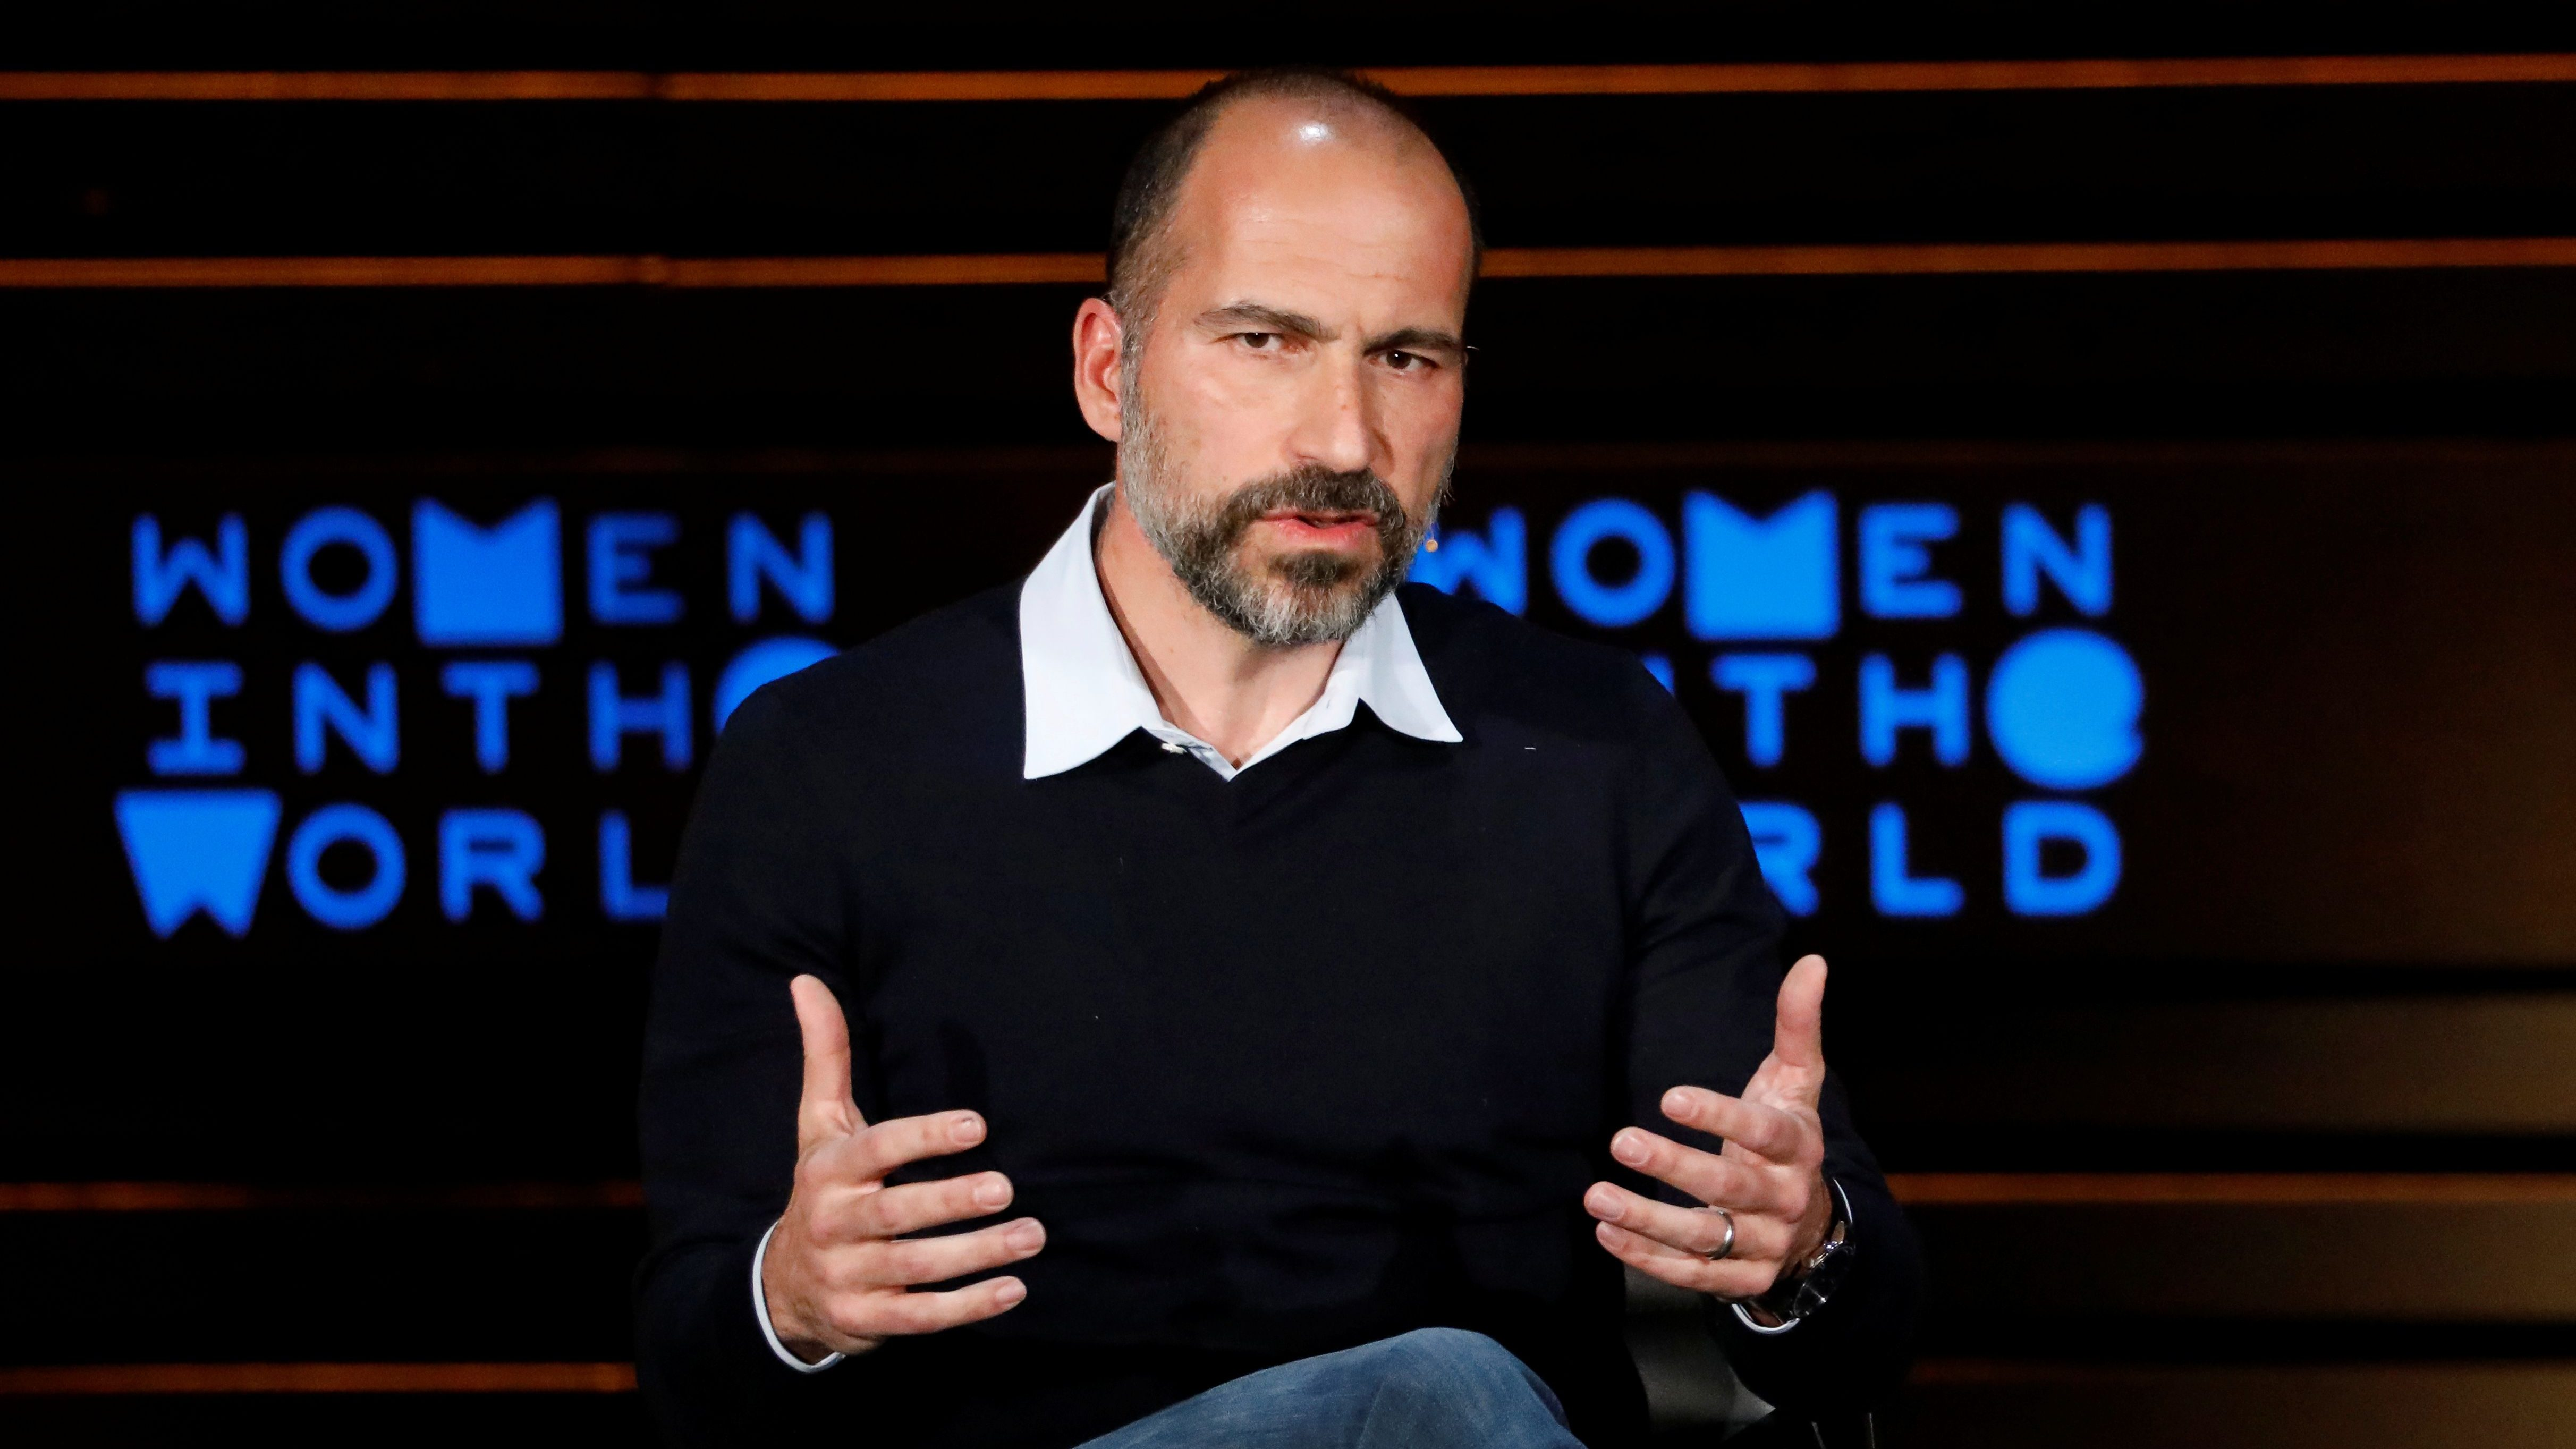 Uber CEO Dara Khosrowshahi  speaks with Journalist Tina Brown during the Women In The World Summit in New York City, U.S., April 12, 2018. REUTERS/Brendan McDermid - RC1F4D3A9750